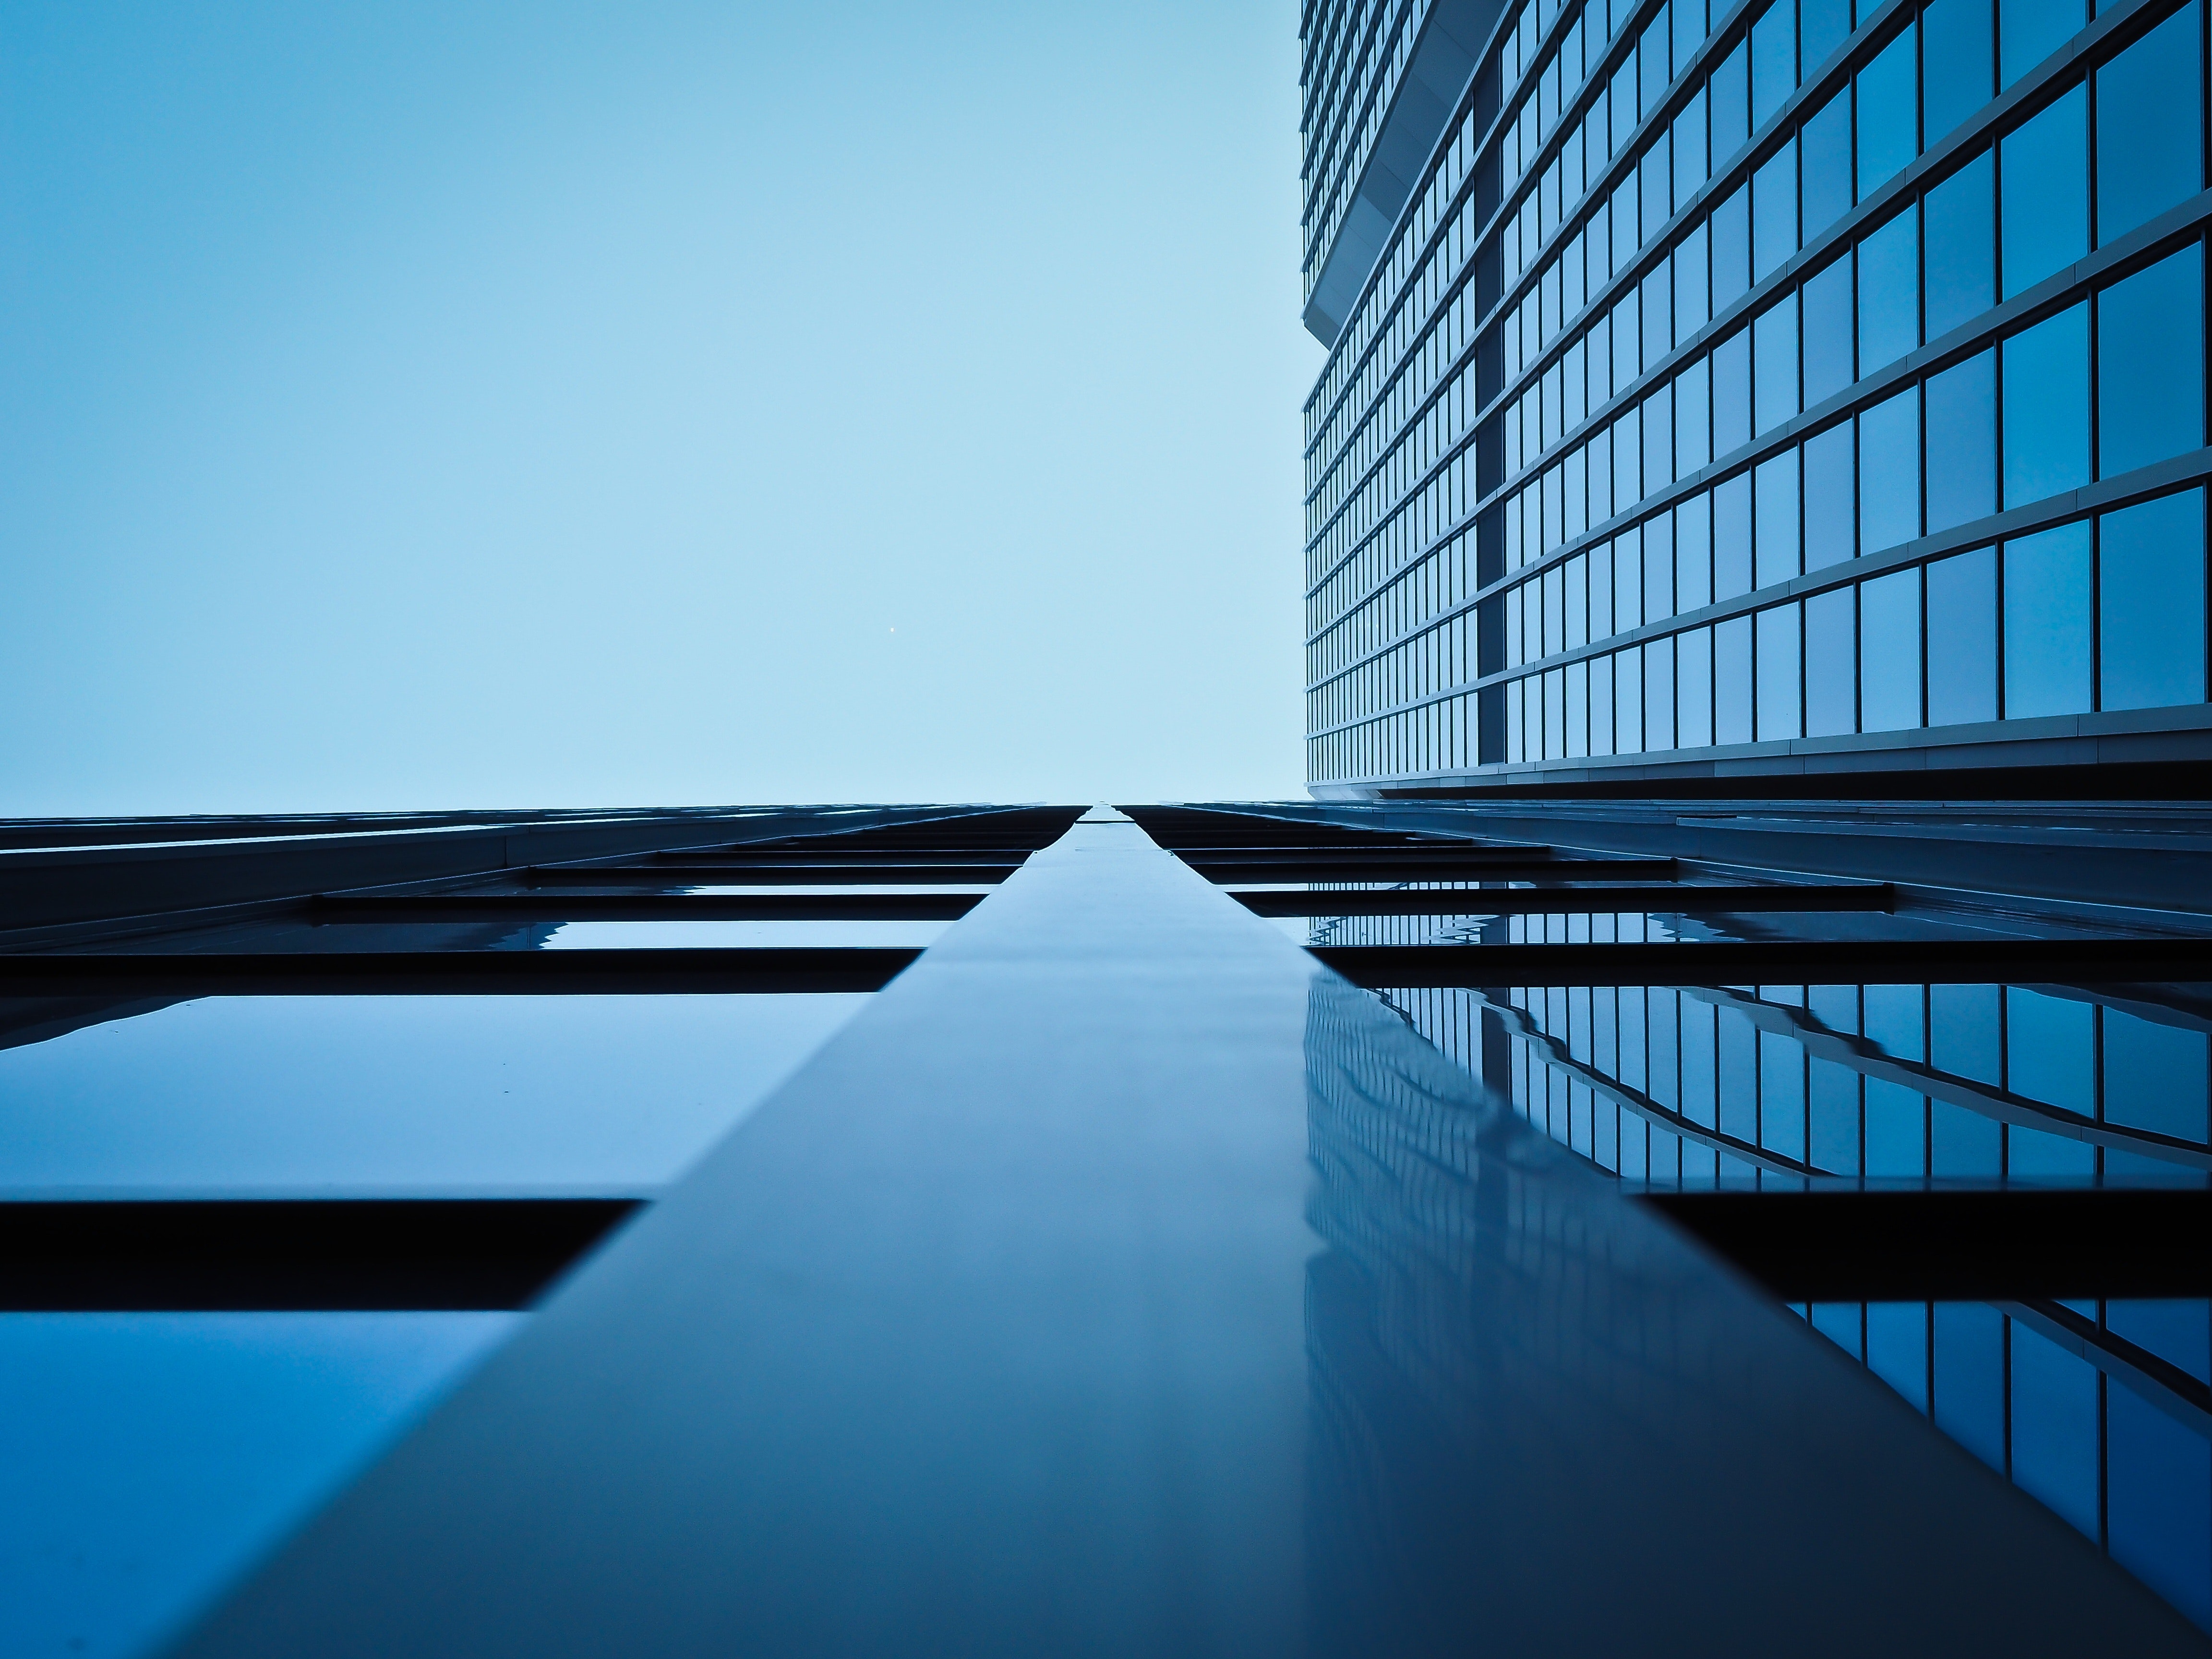 Low Angle View of Office Building Against Clear Sky, Architecture, Mirroring, Urban, Tall, HQ Photo